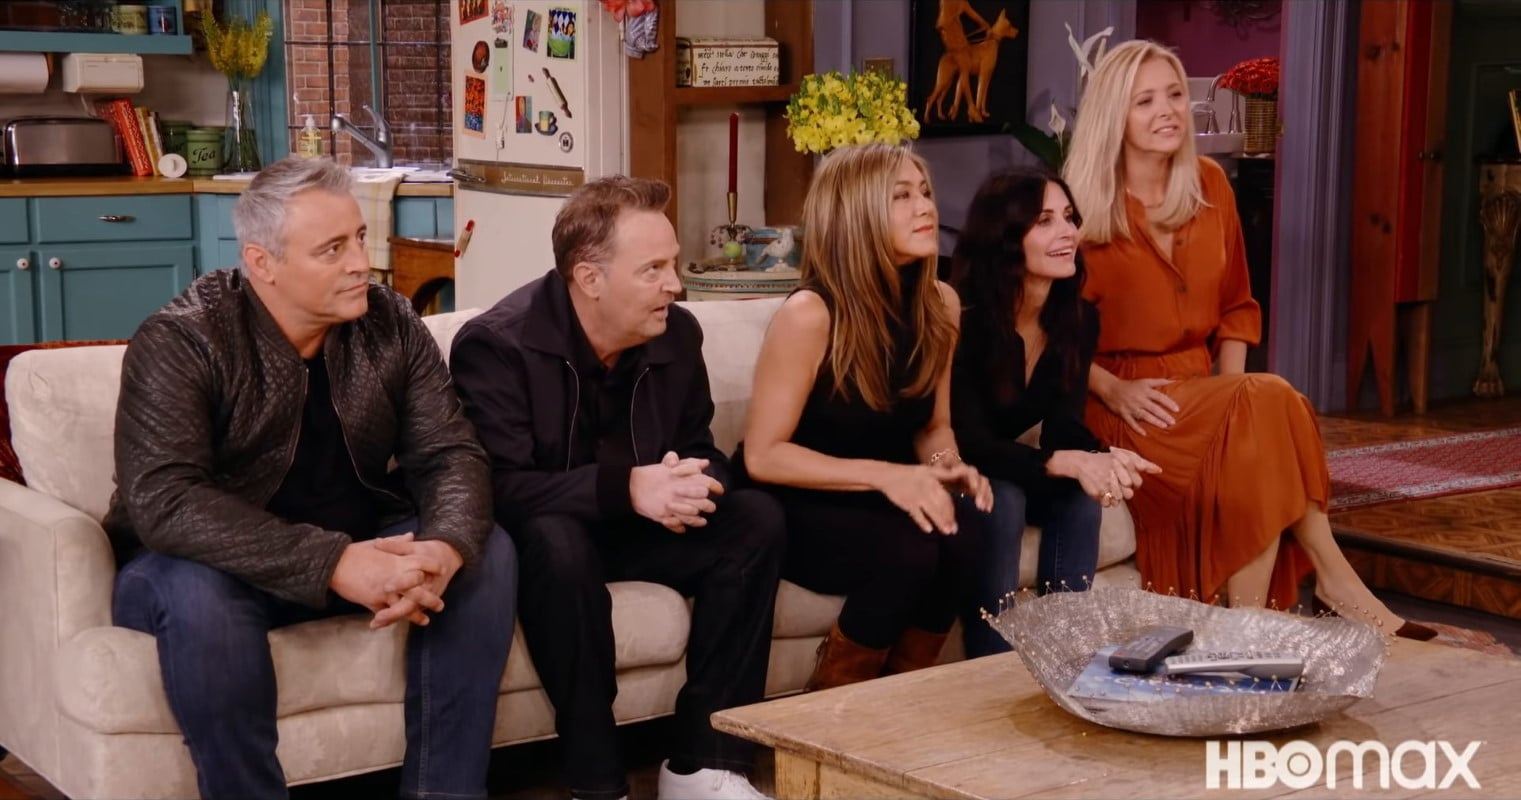 Friends: The Reunion Release Set for 9 Asian Countries